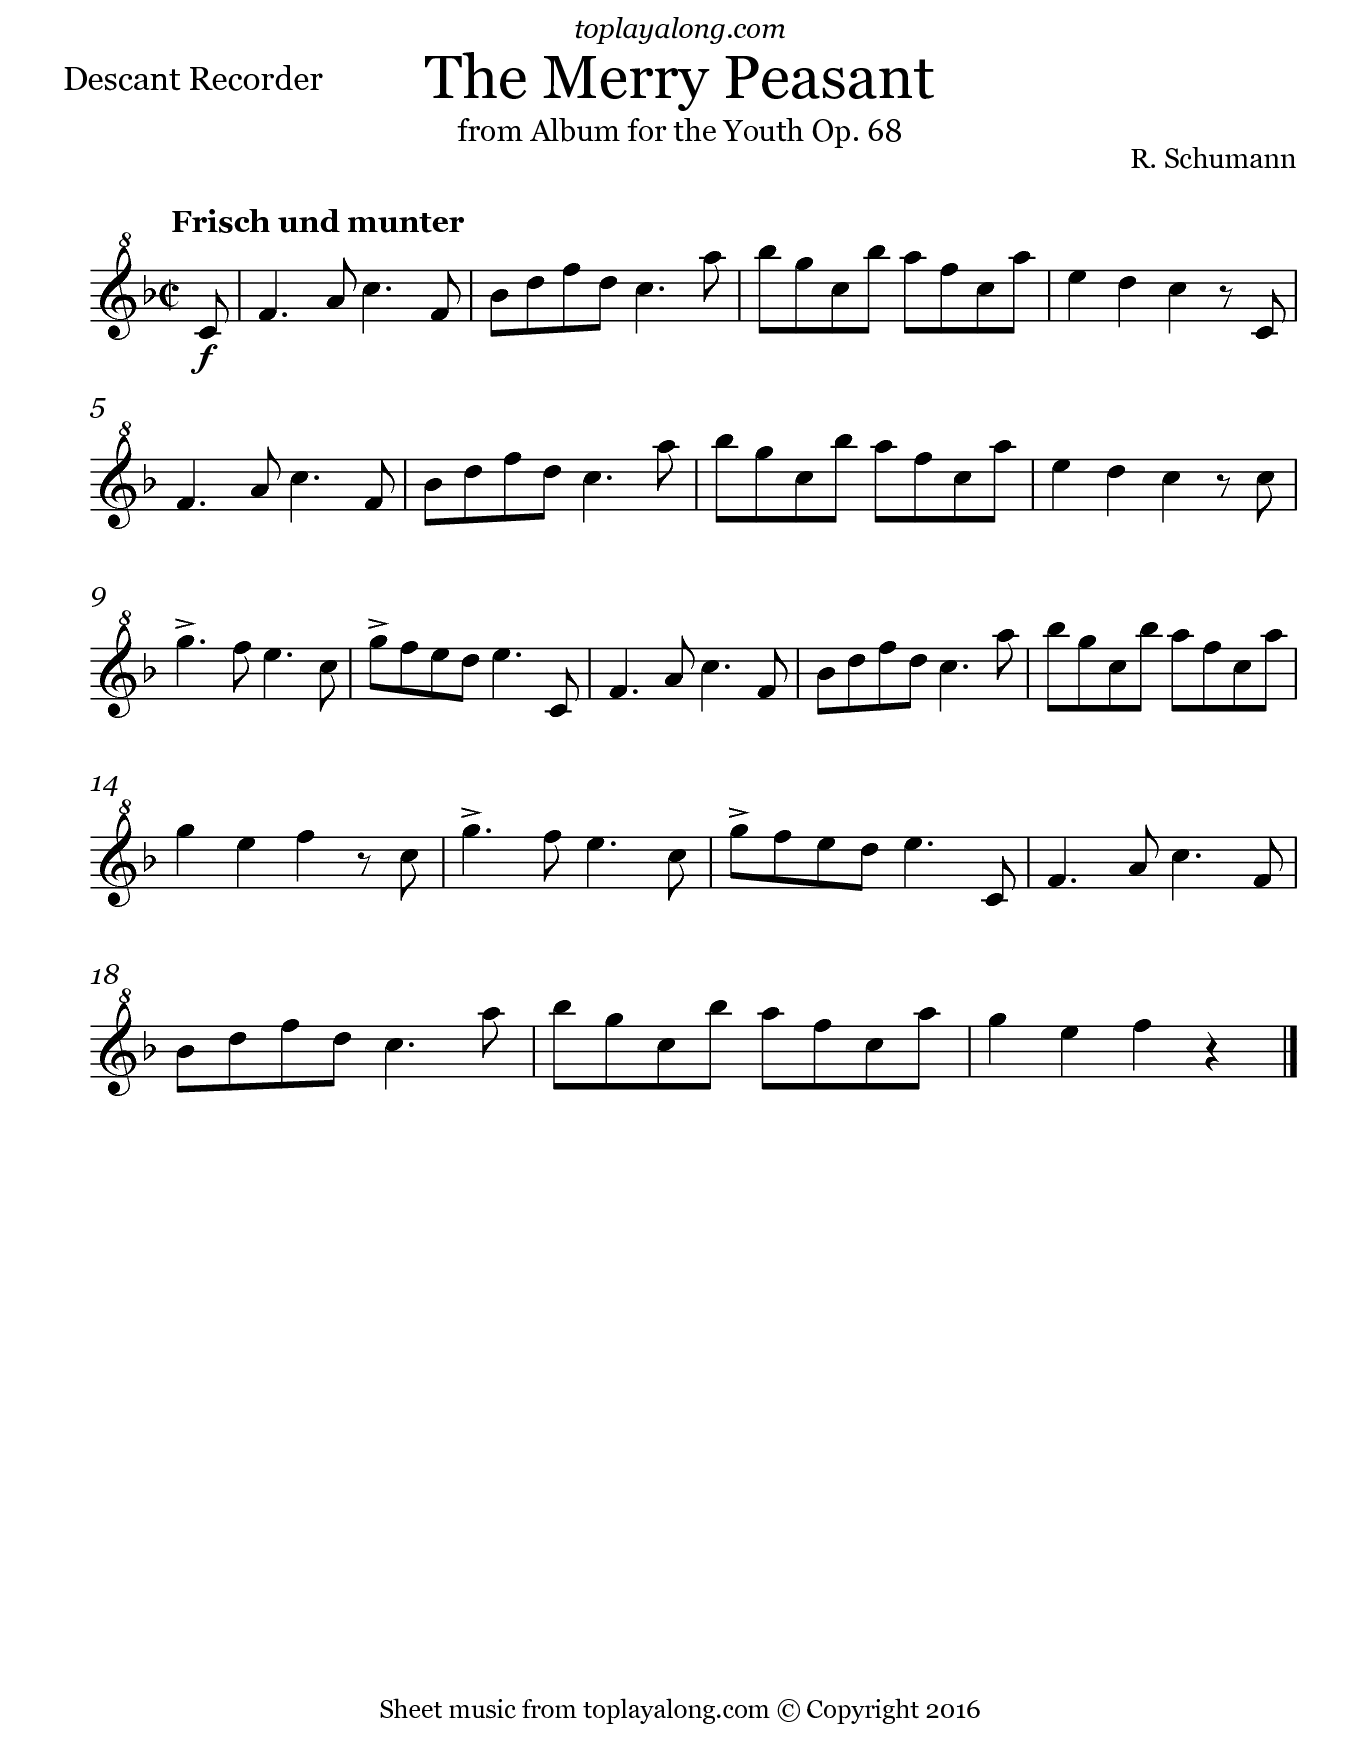 The Merry Peasant by Schumann. Sheet music for Recorder, page 1.